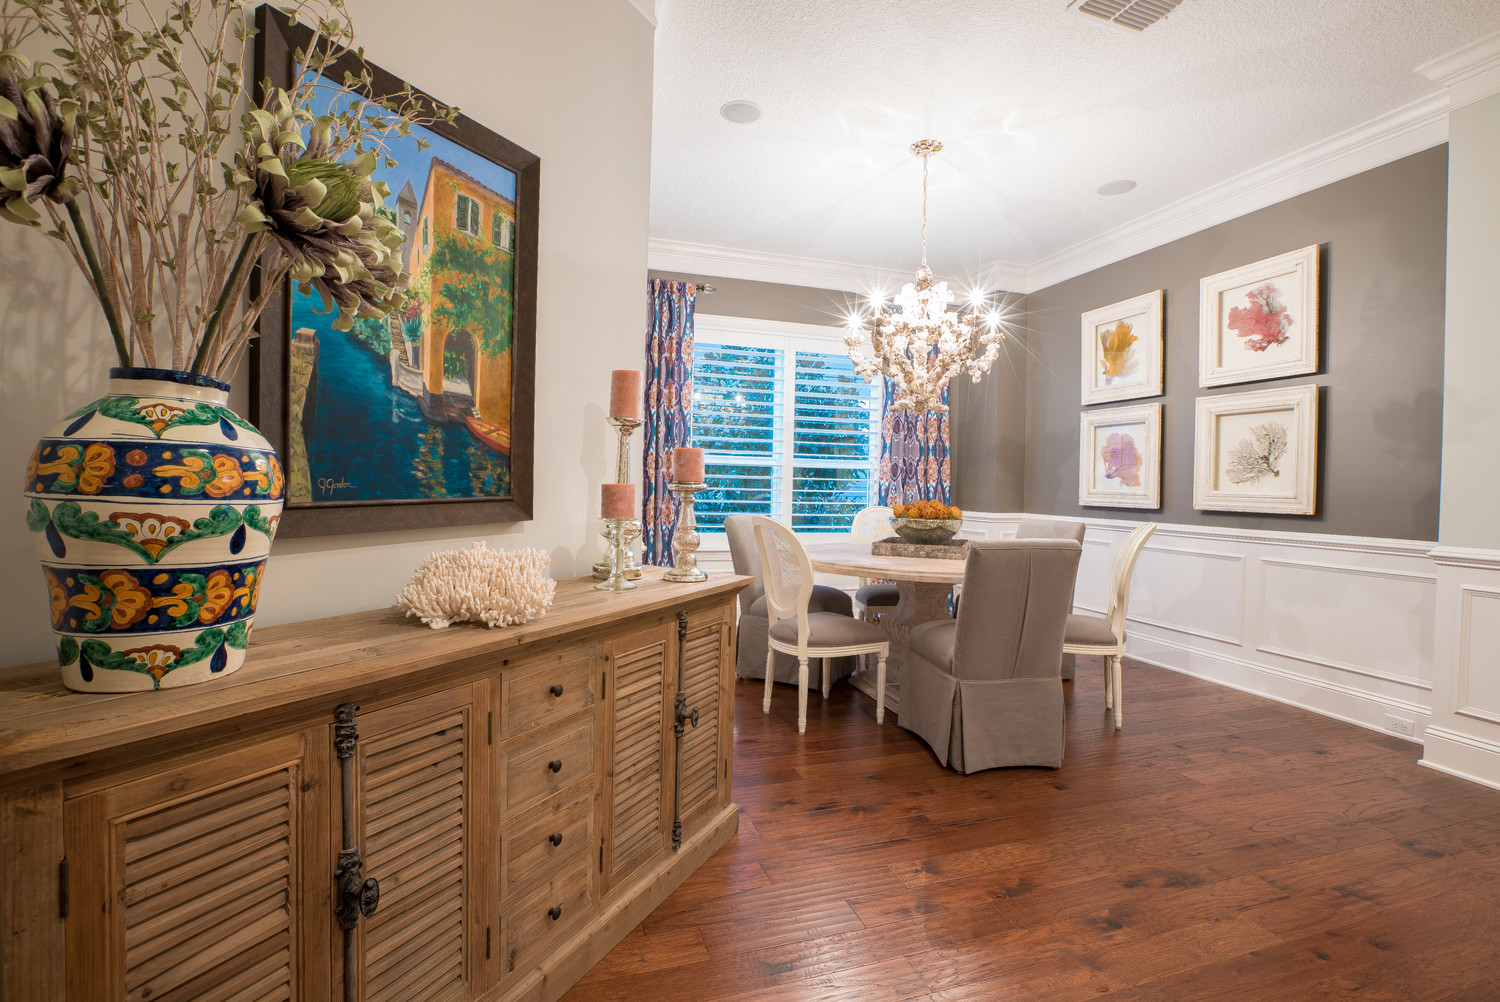 Karen Rothen provides residential and commercial interior design throughout Northeast Florida.